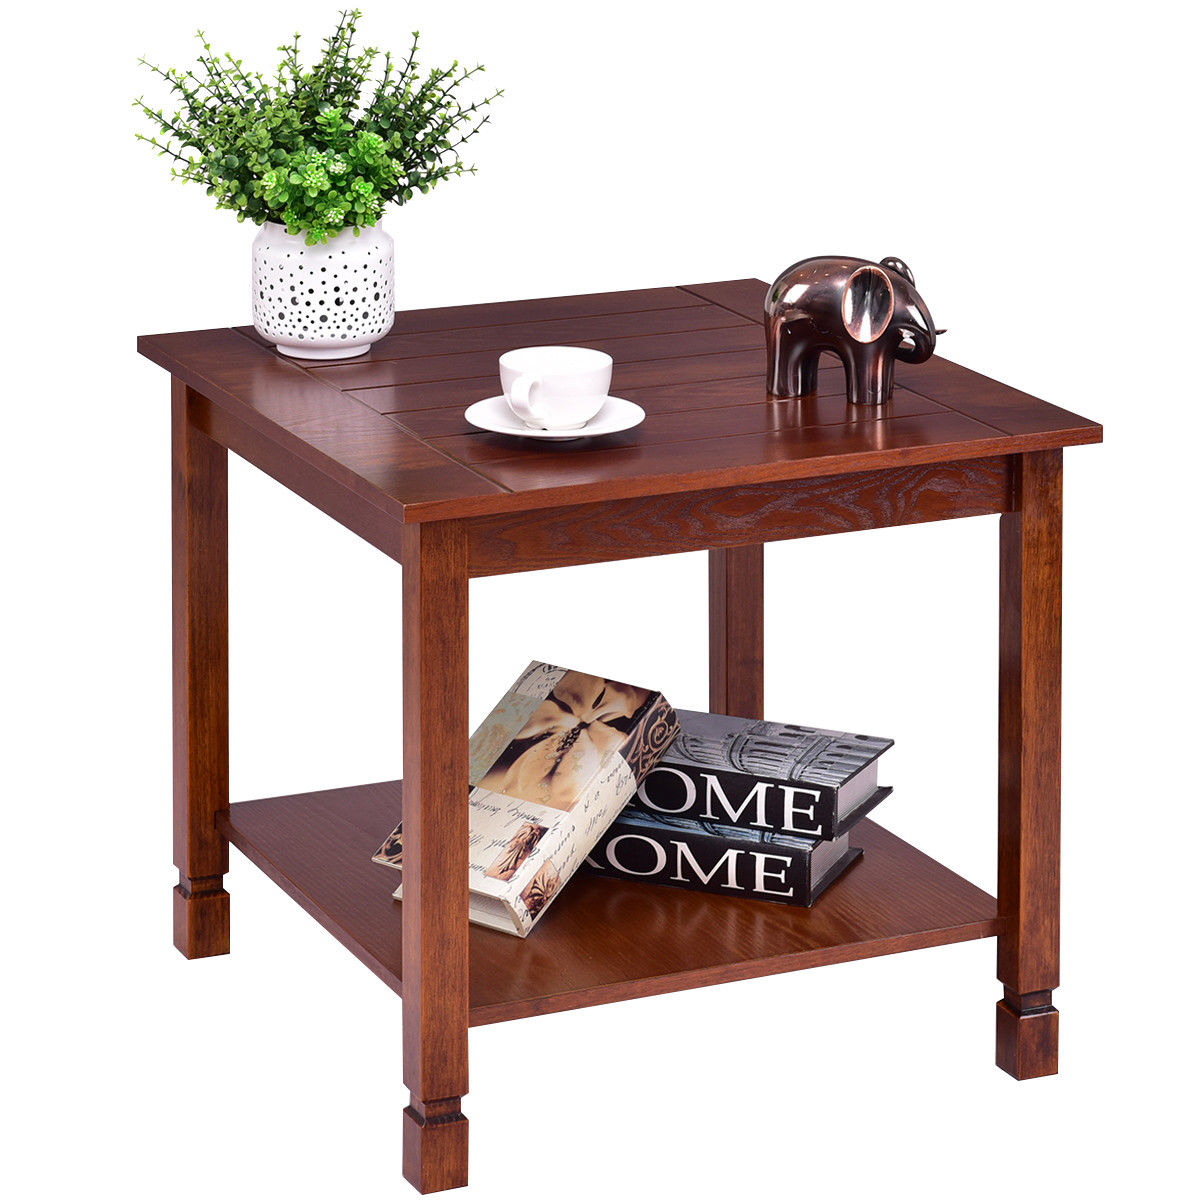 giantex wood side table living room end night stand coffee with storage shelf walnut basket furniture tables from spaces slab legs outdoor garden sets scandinavian style pine log